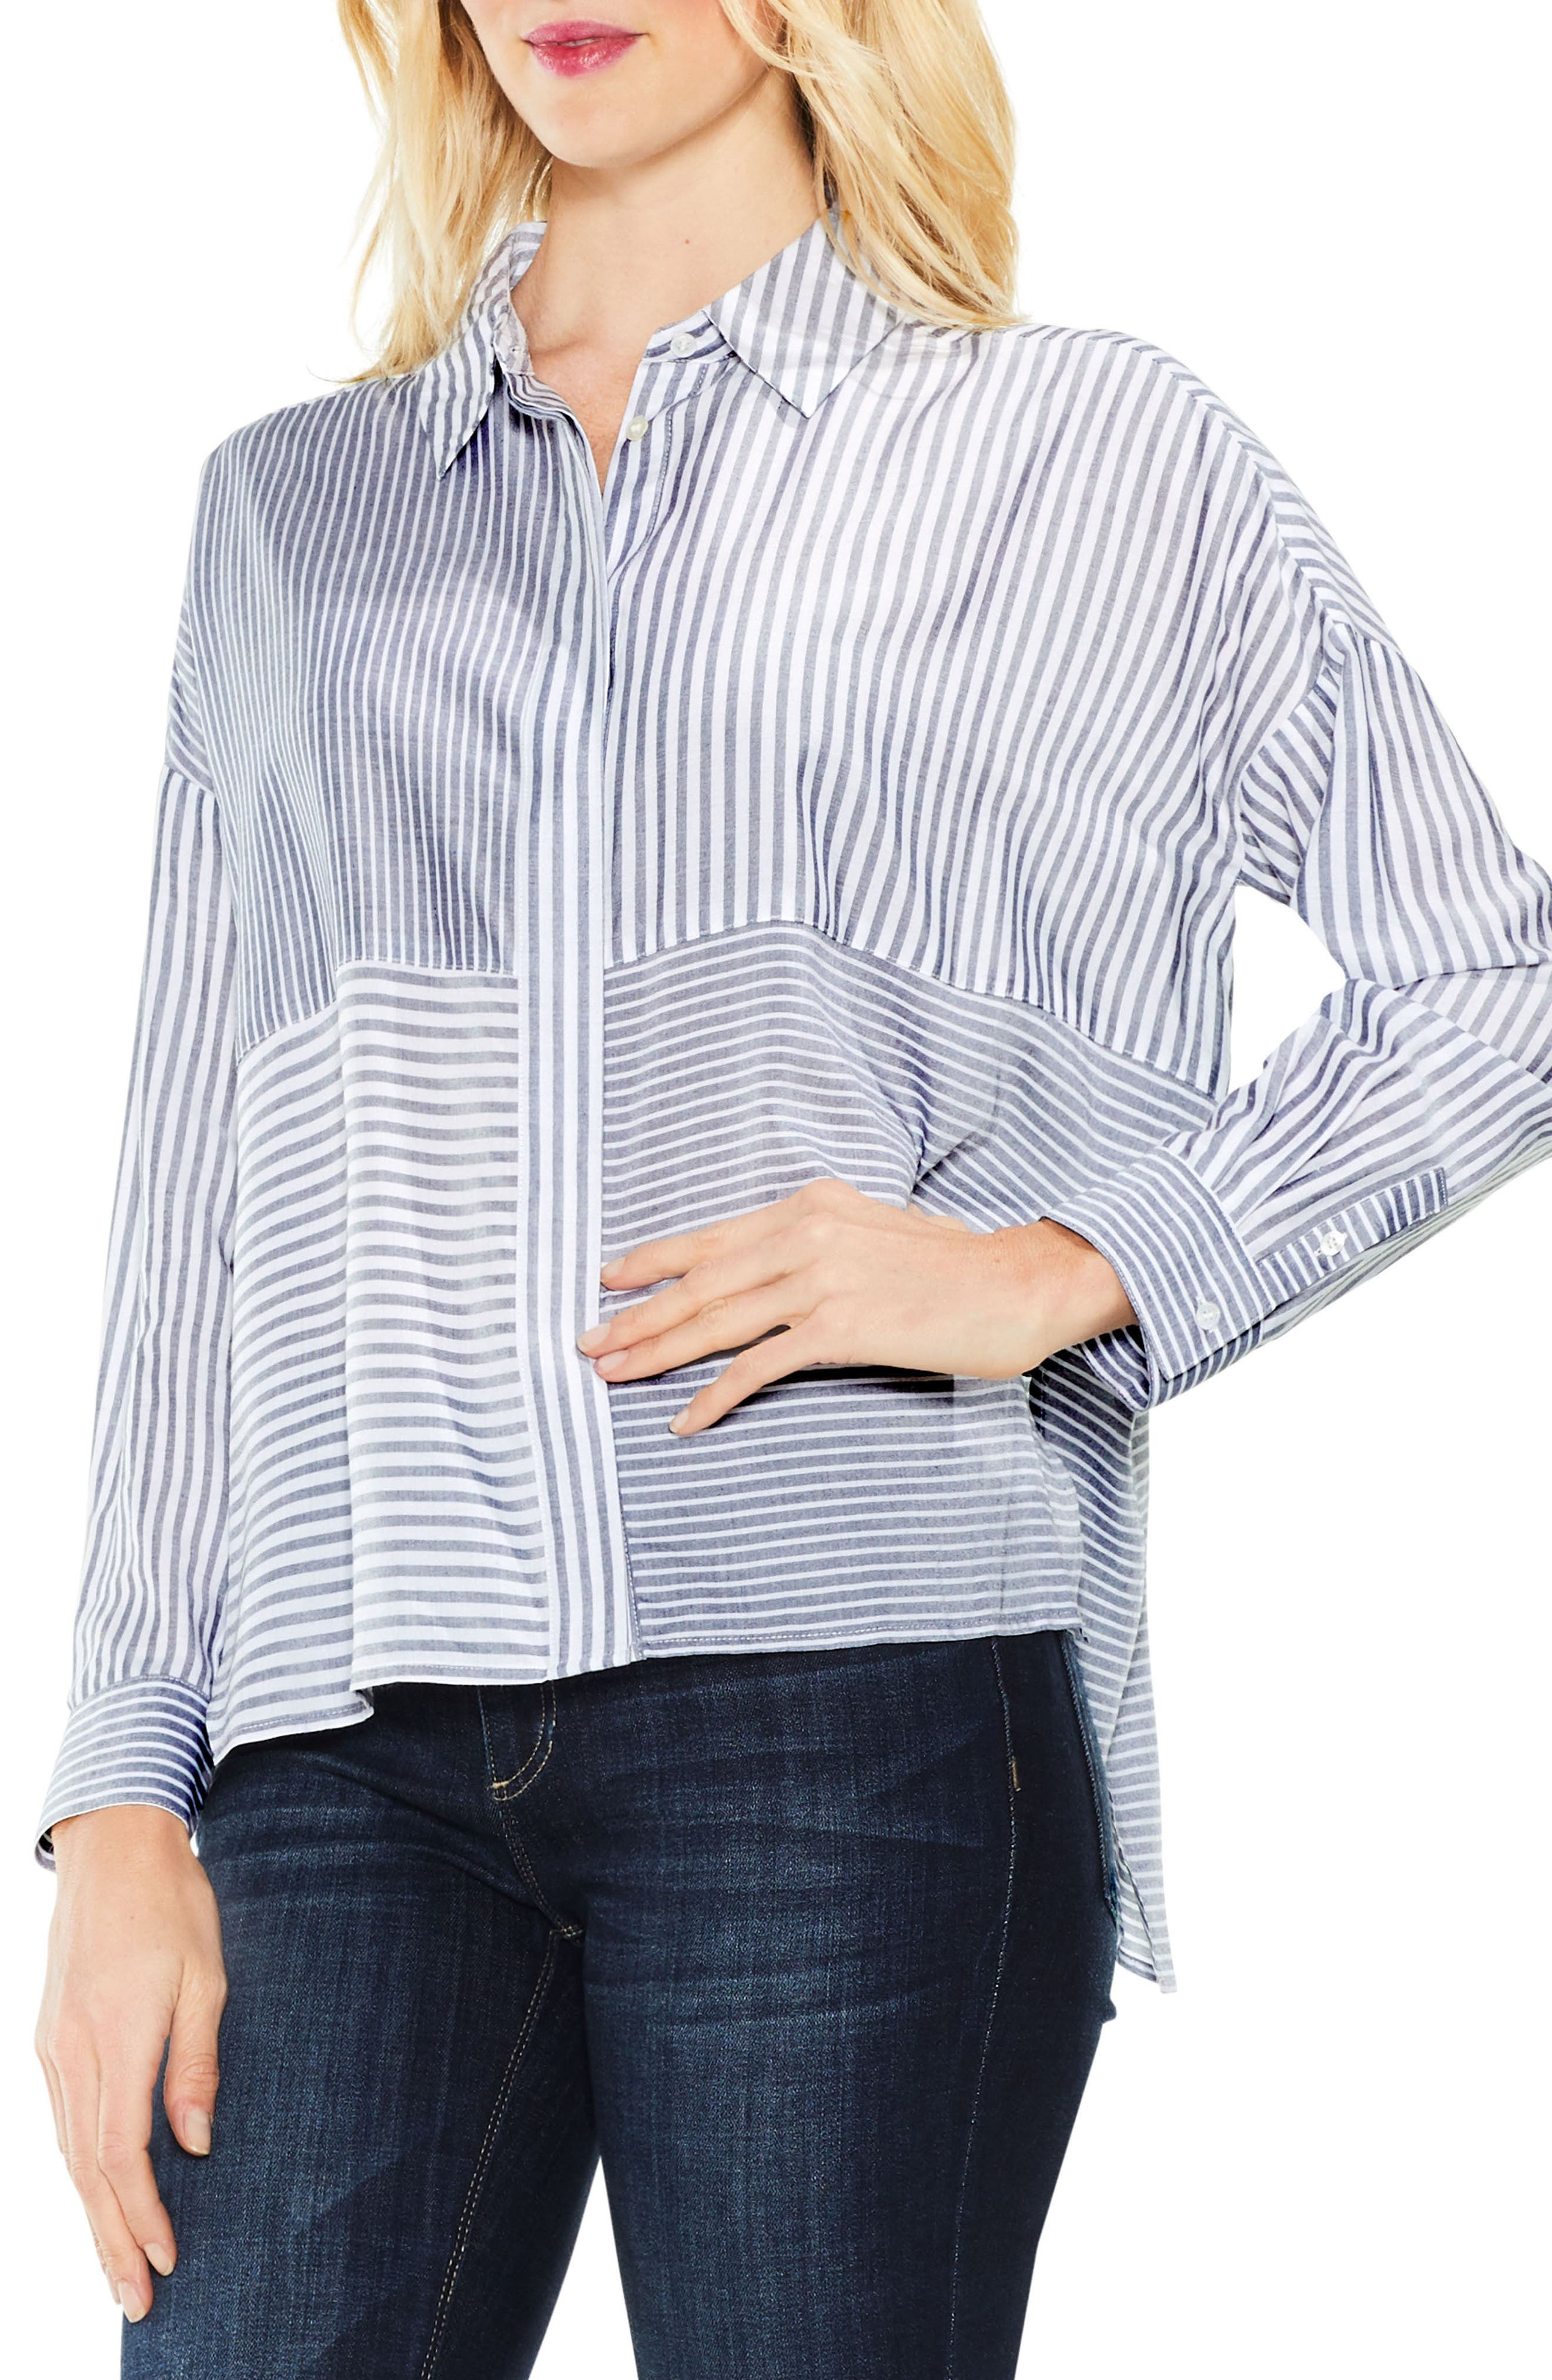 Main Image - Two by Vince Camuto Mix Stripe Button Down Shirt